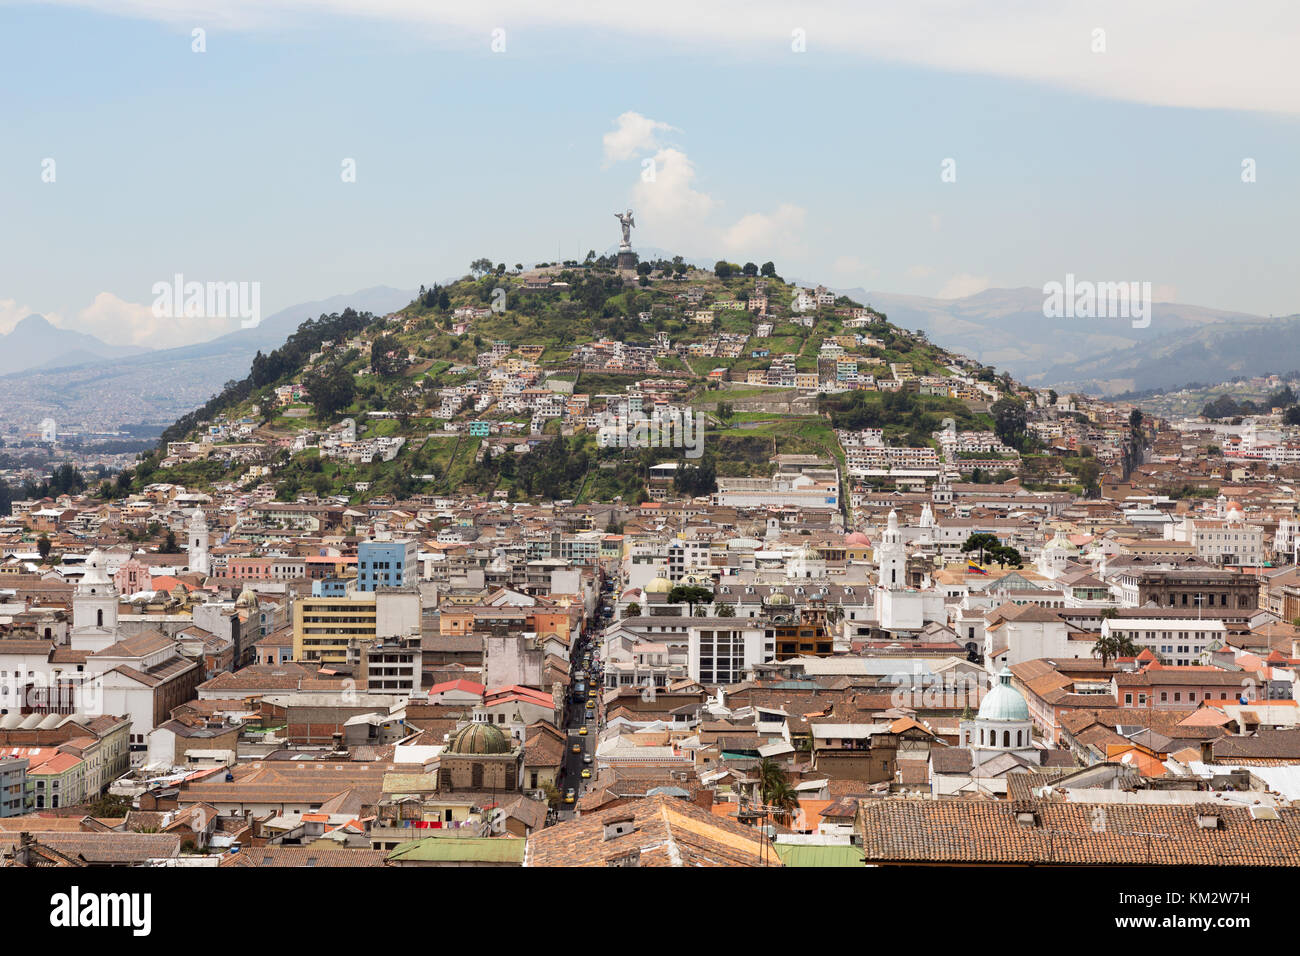 panecillo-hill-quito-ecuador-south-america-KM2W7H.jpg